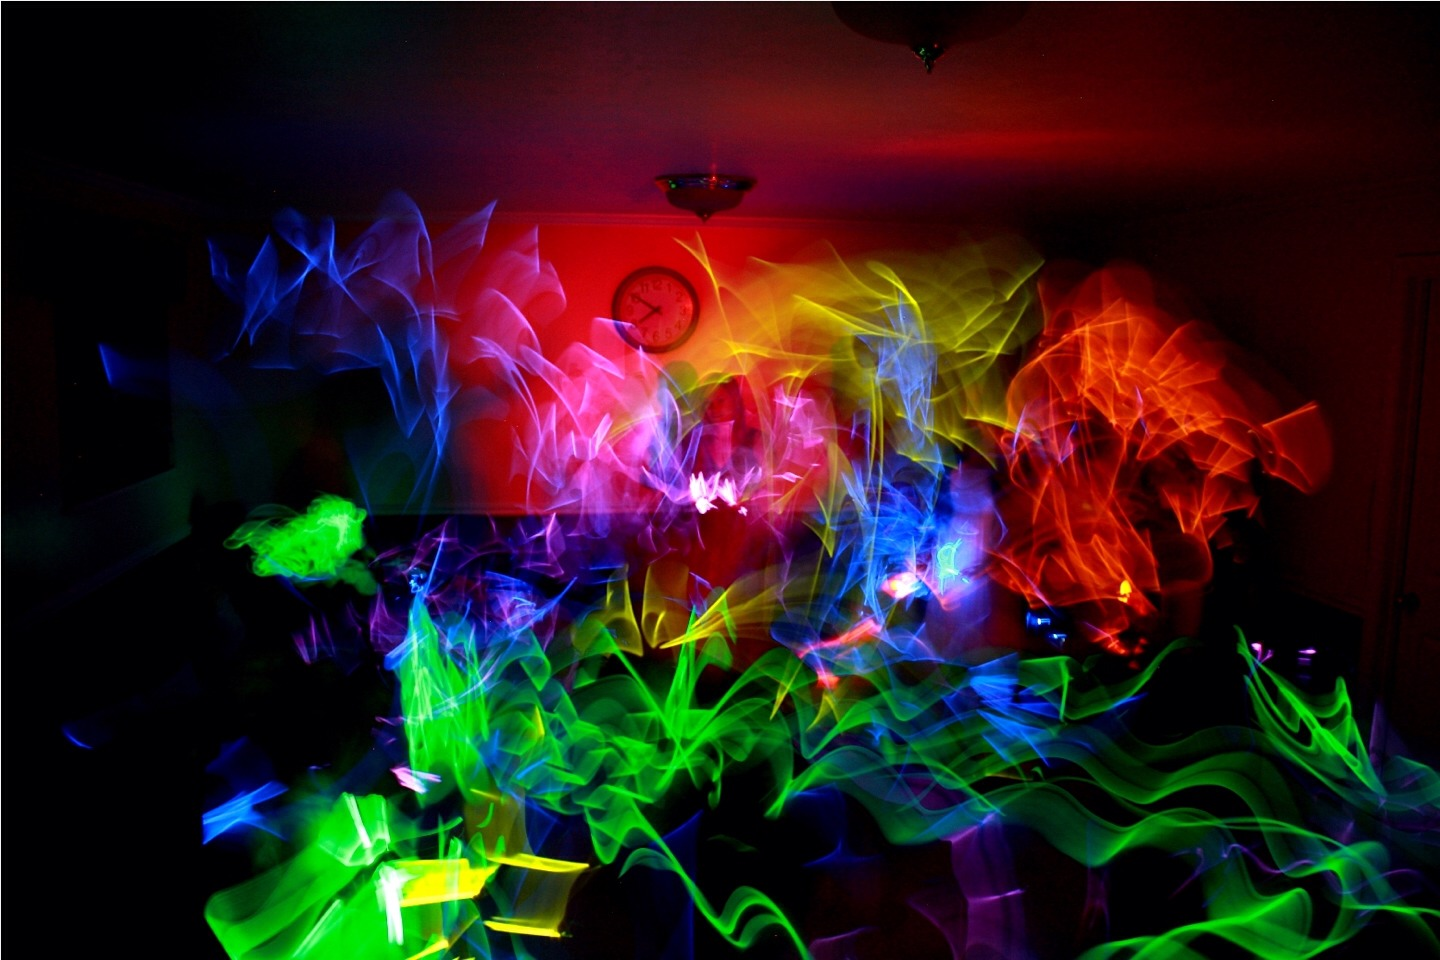 Glow party: This would be awesome. Turn the lights off and give everyone a glow stick. And hang crazy blinking lights everywhere! 🙎